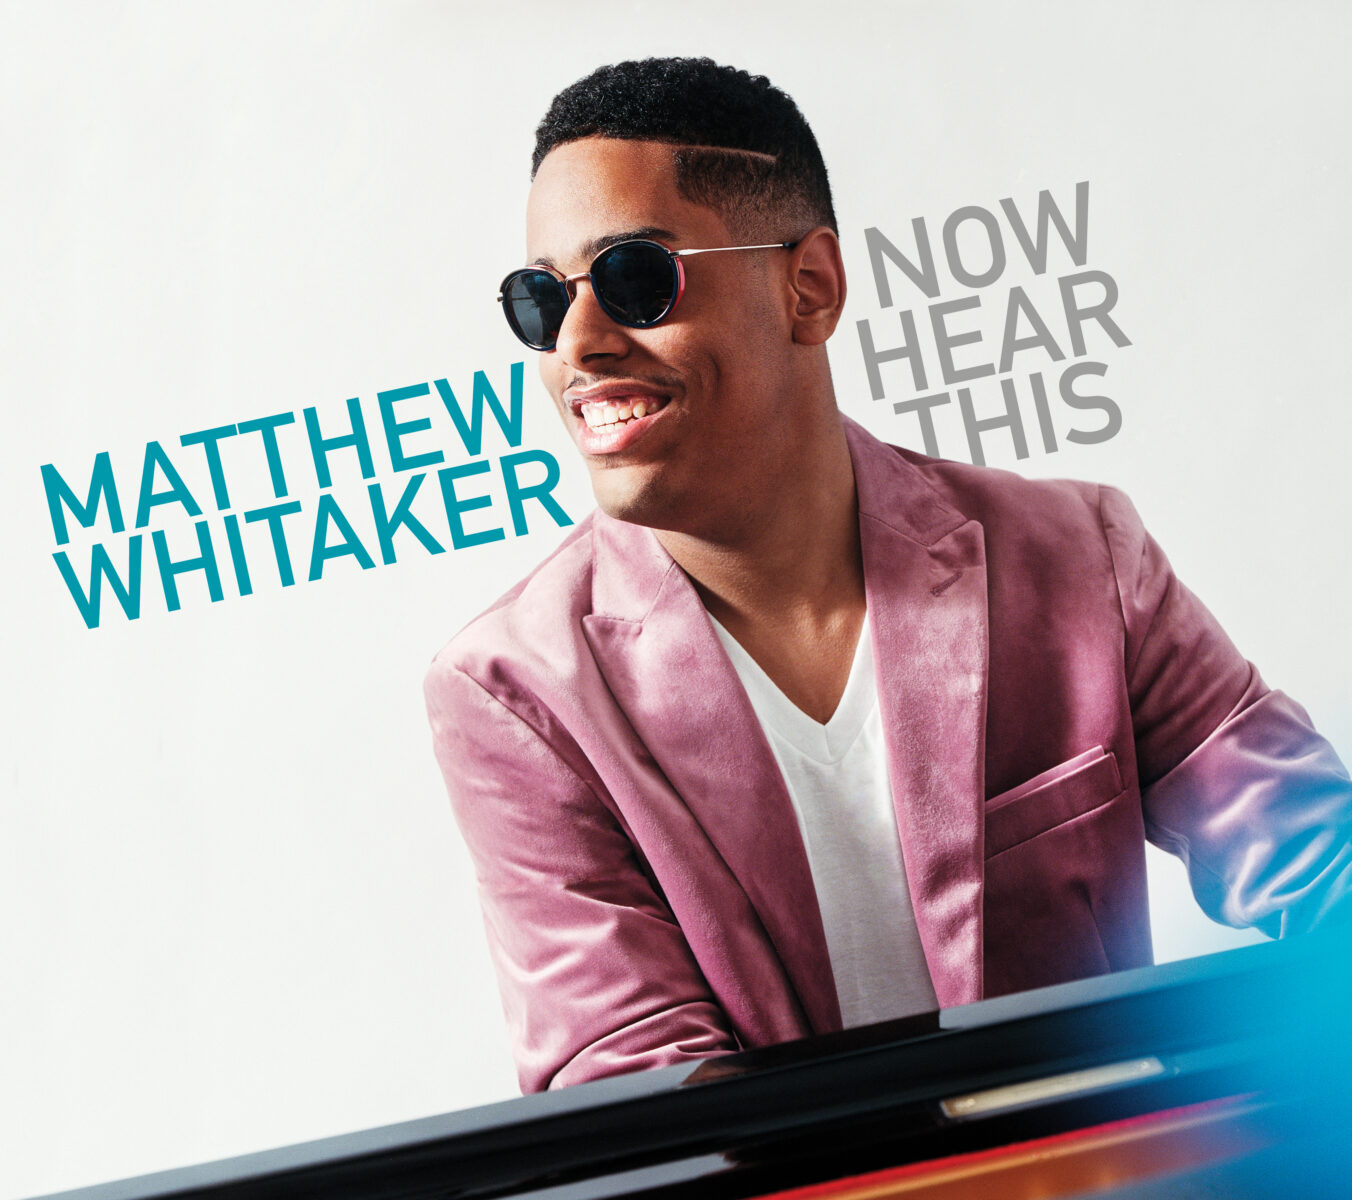 Mathew Whitaker_Now Hear This_COVER